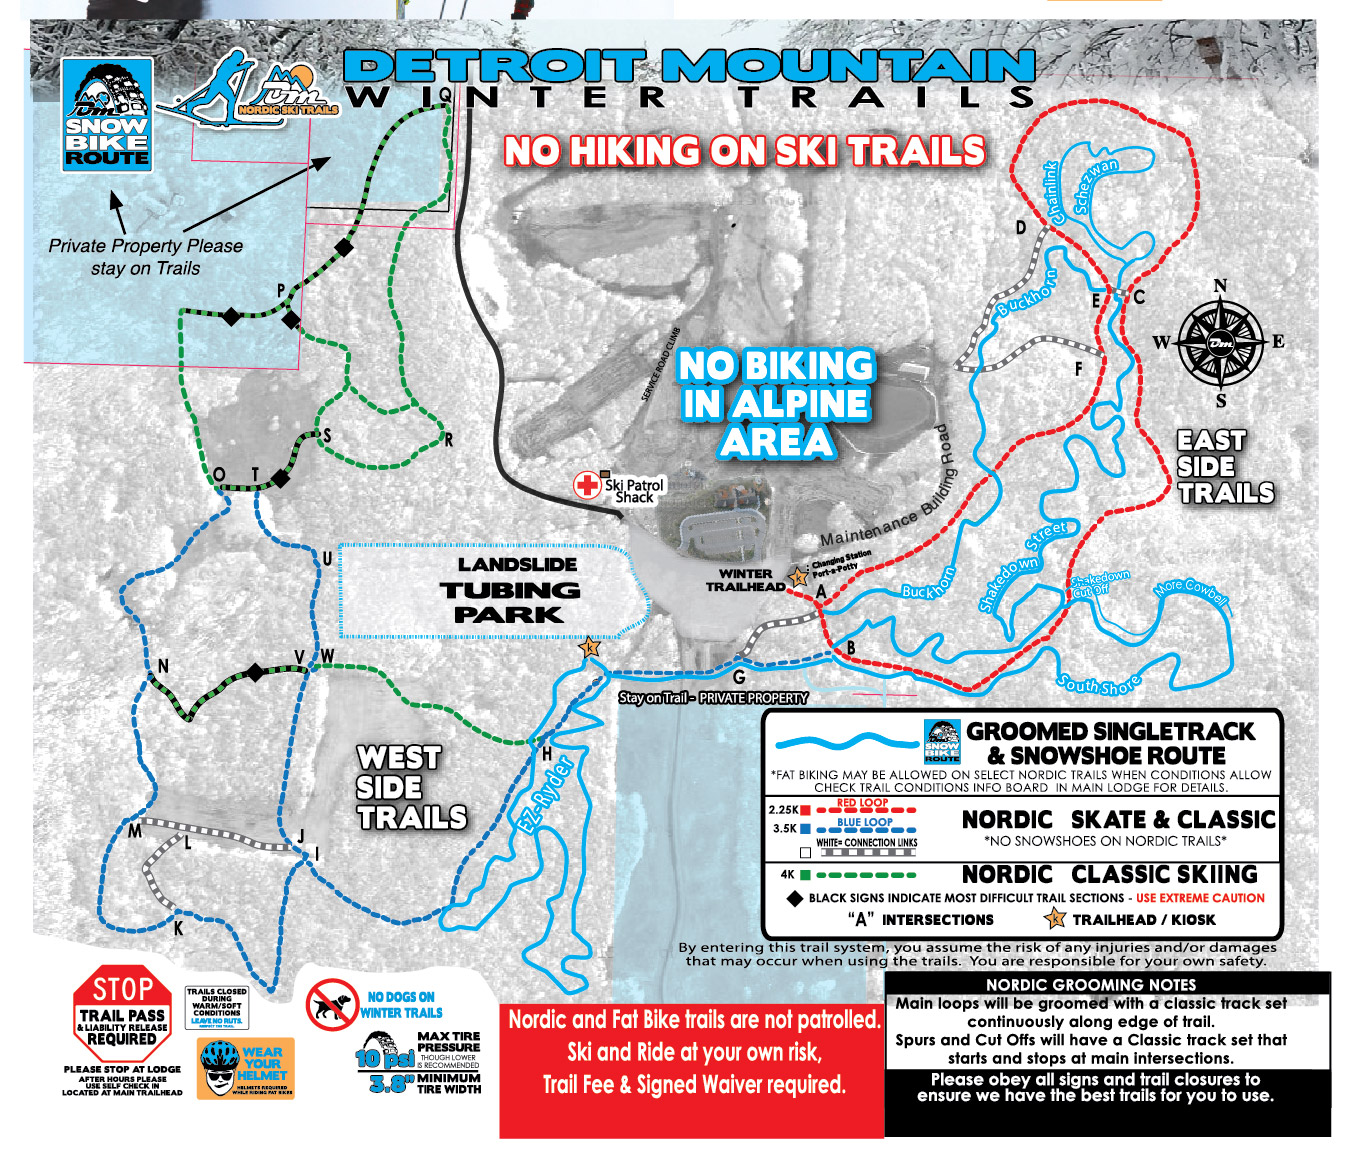 WINTER _trails_MAP-01